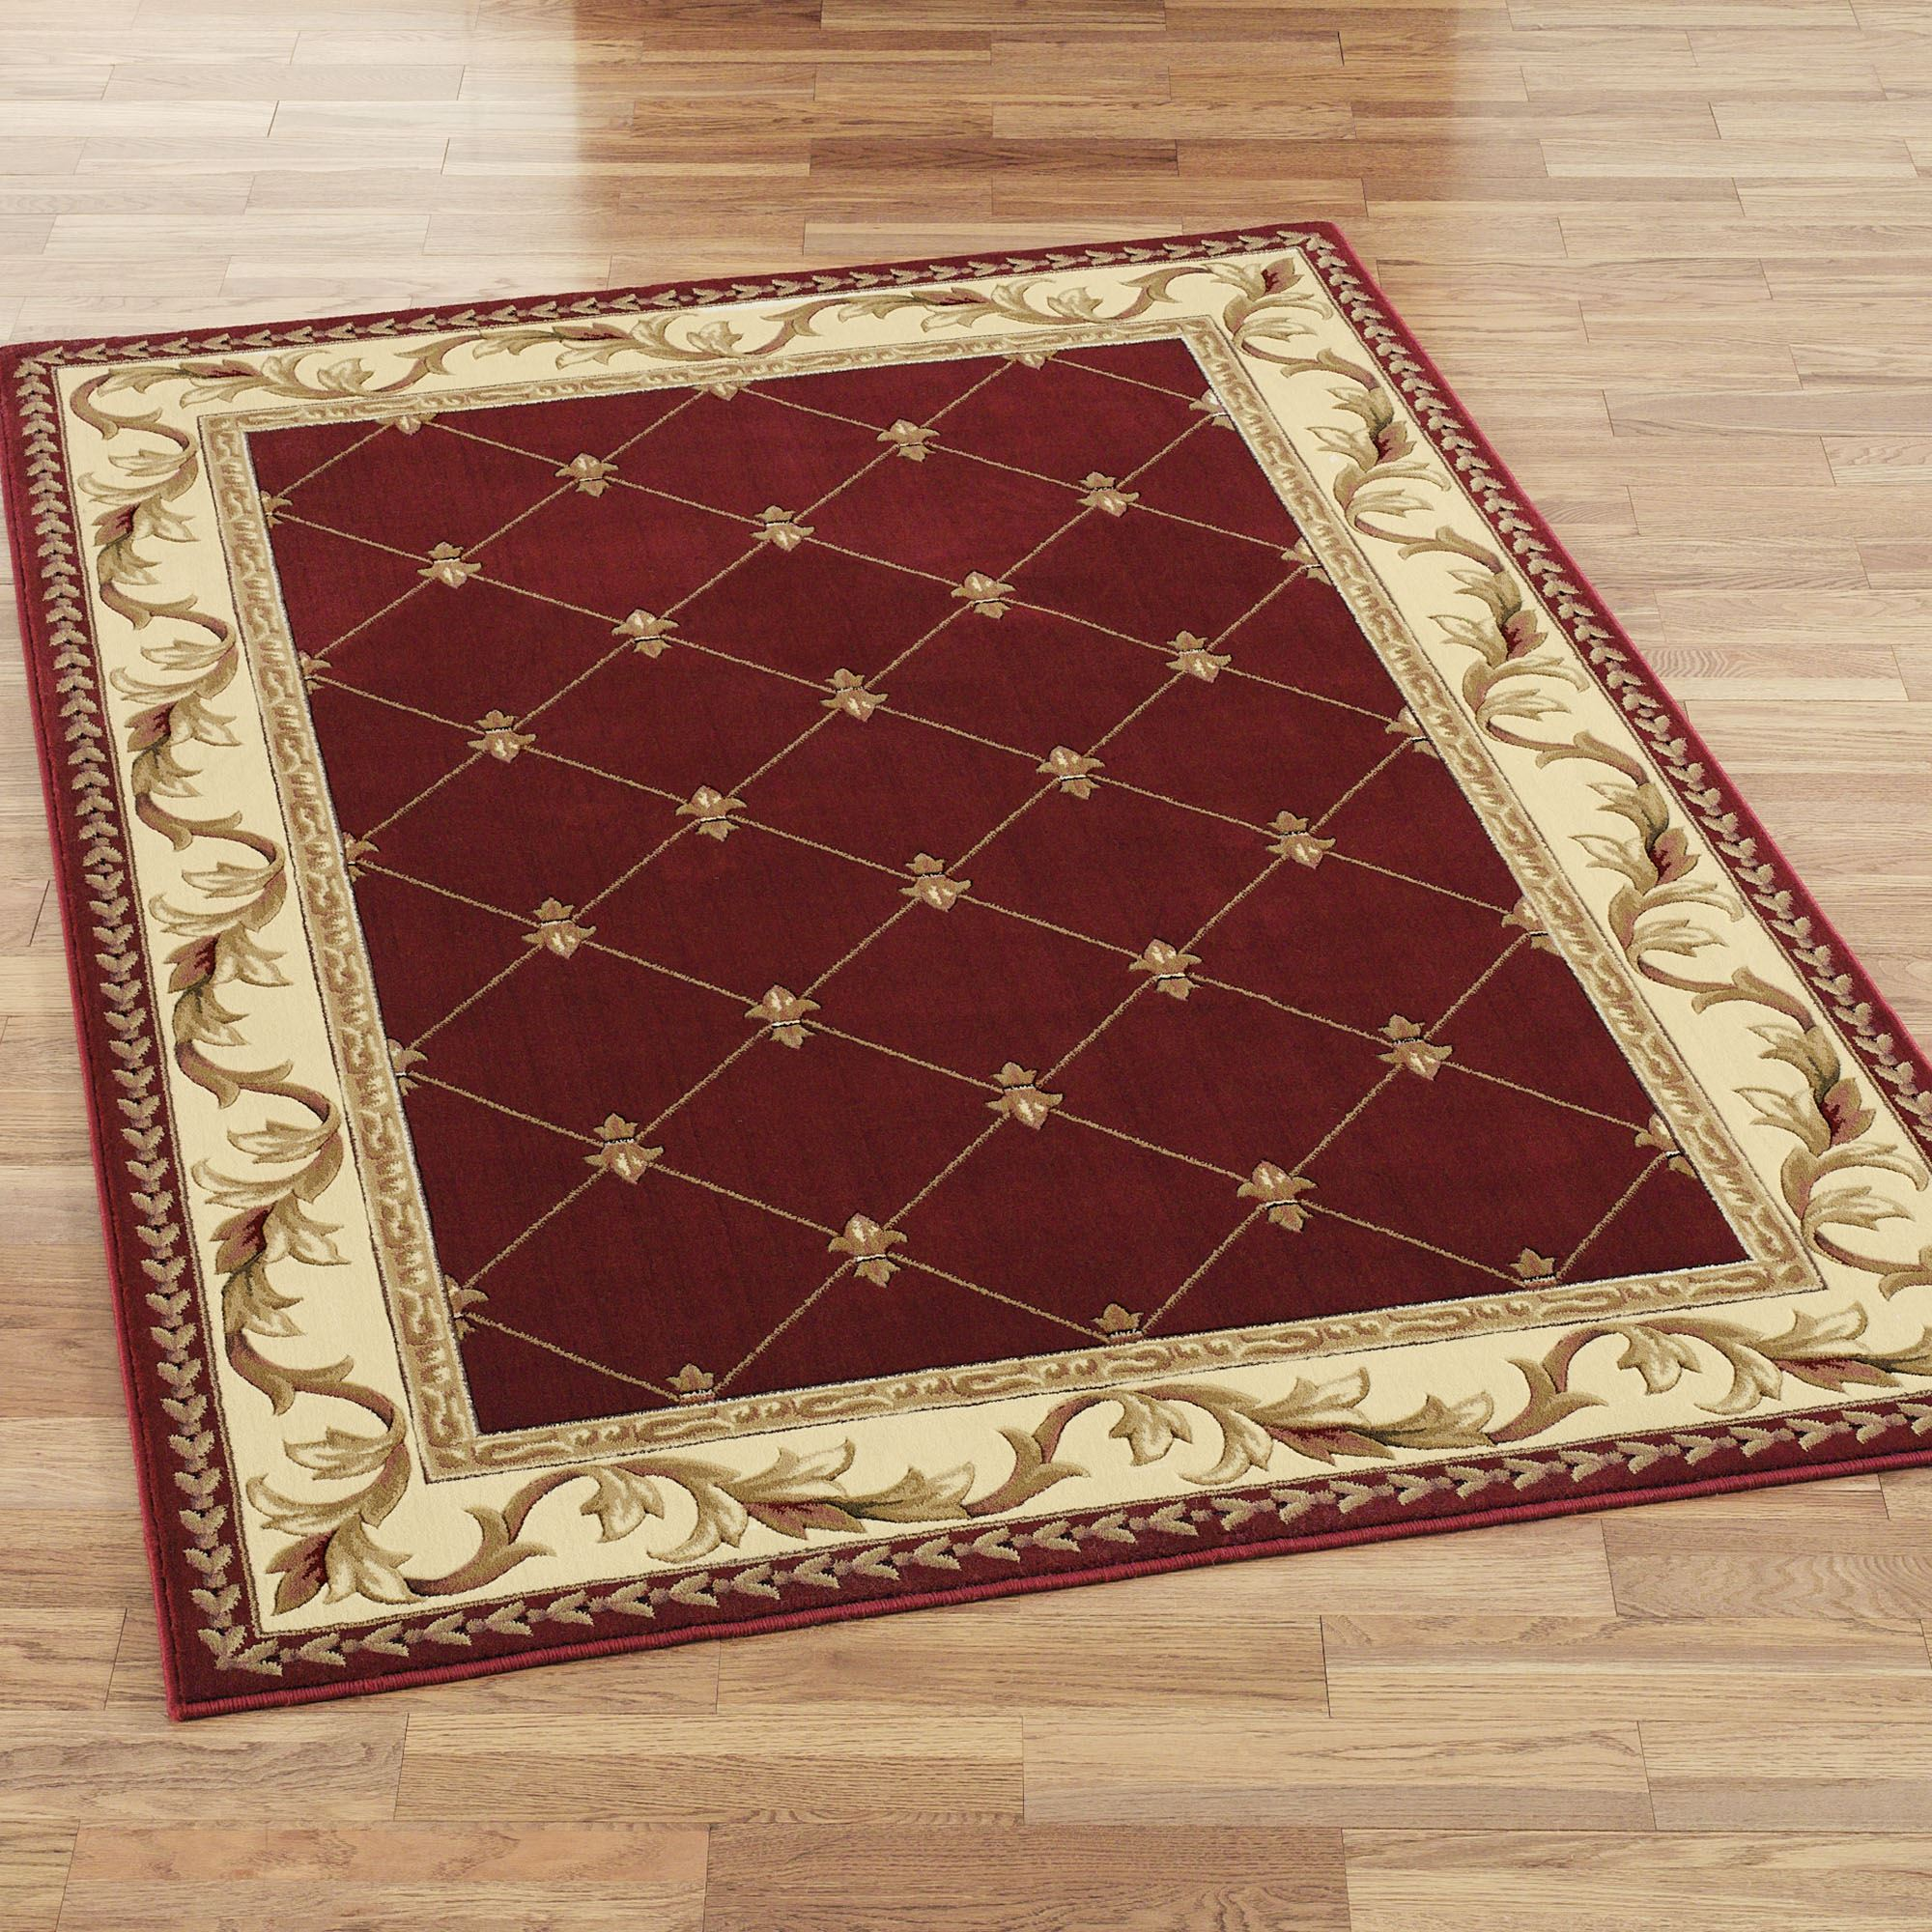 Roman Rug Rugs Ideas